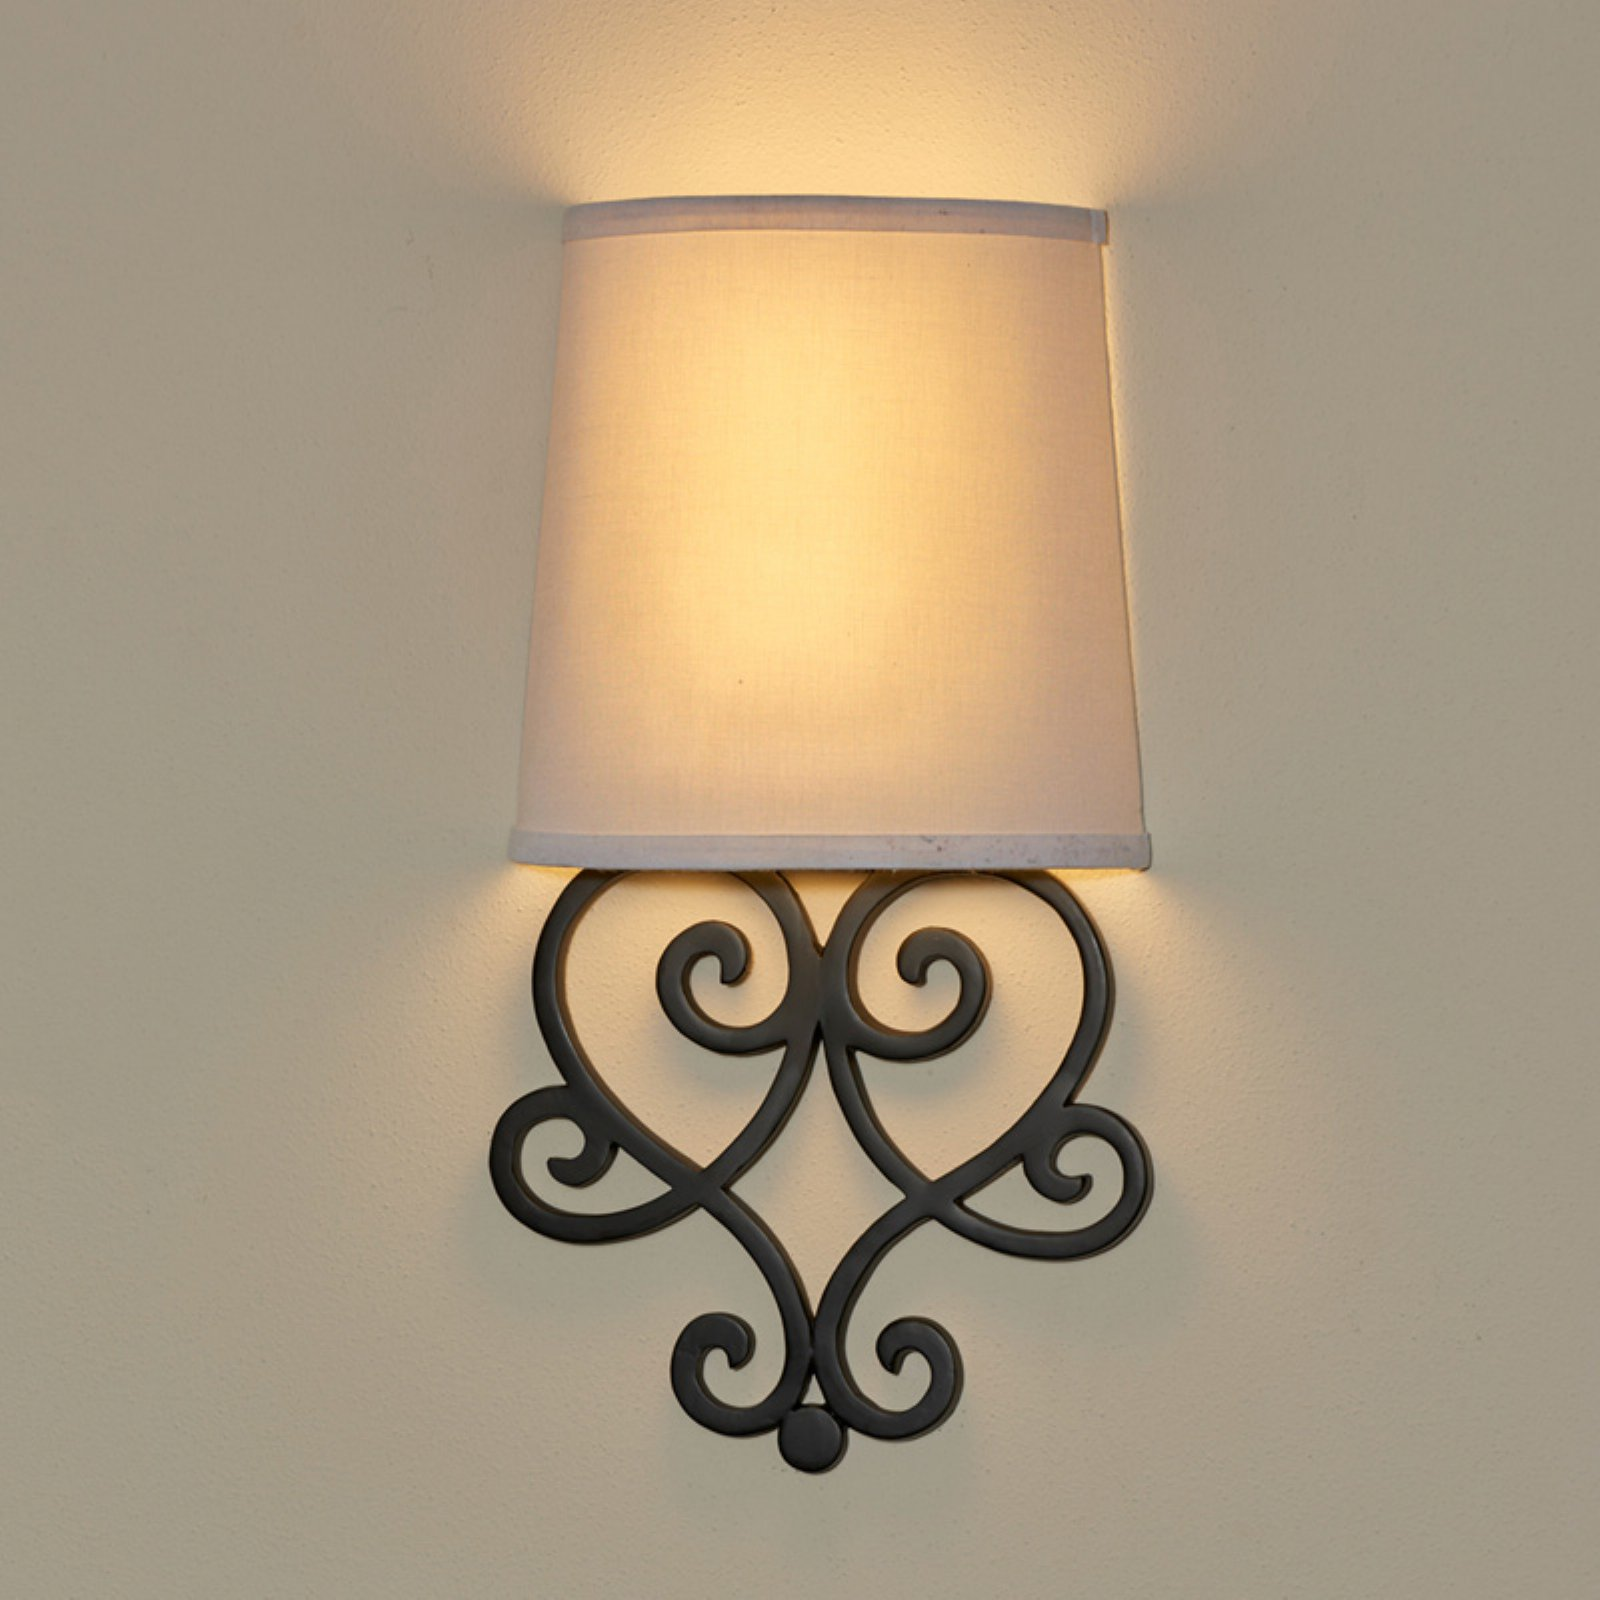 Its Exciting Lighting Helix Heart Scroll Wall Sconce